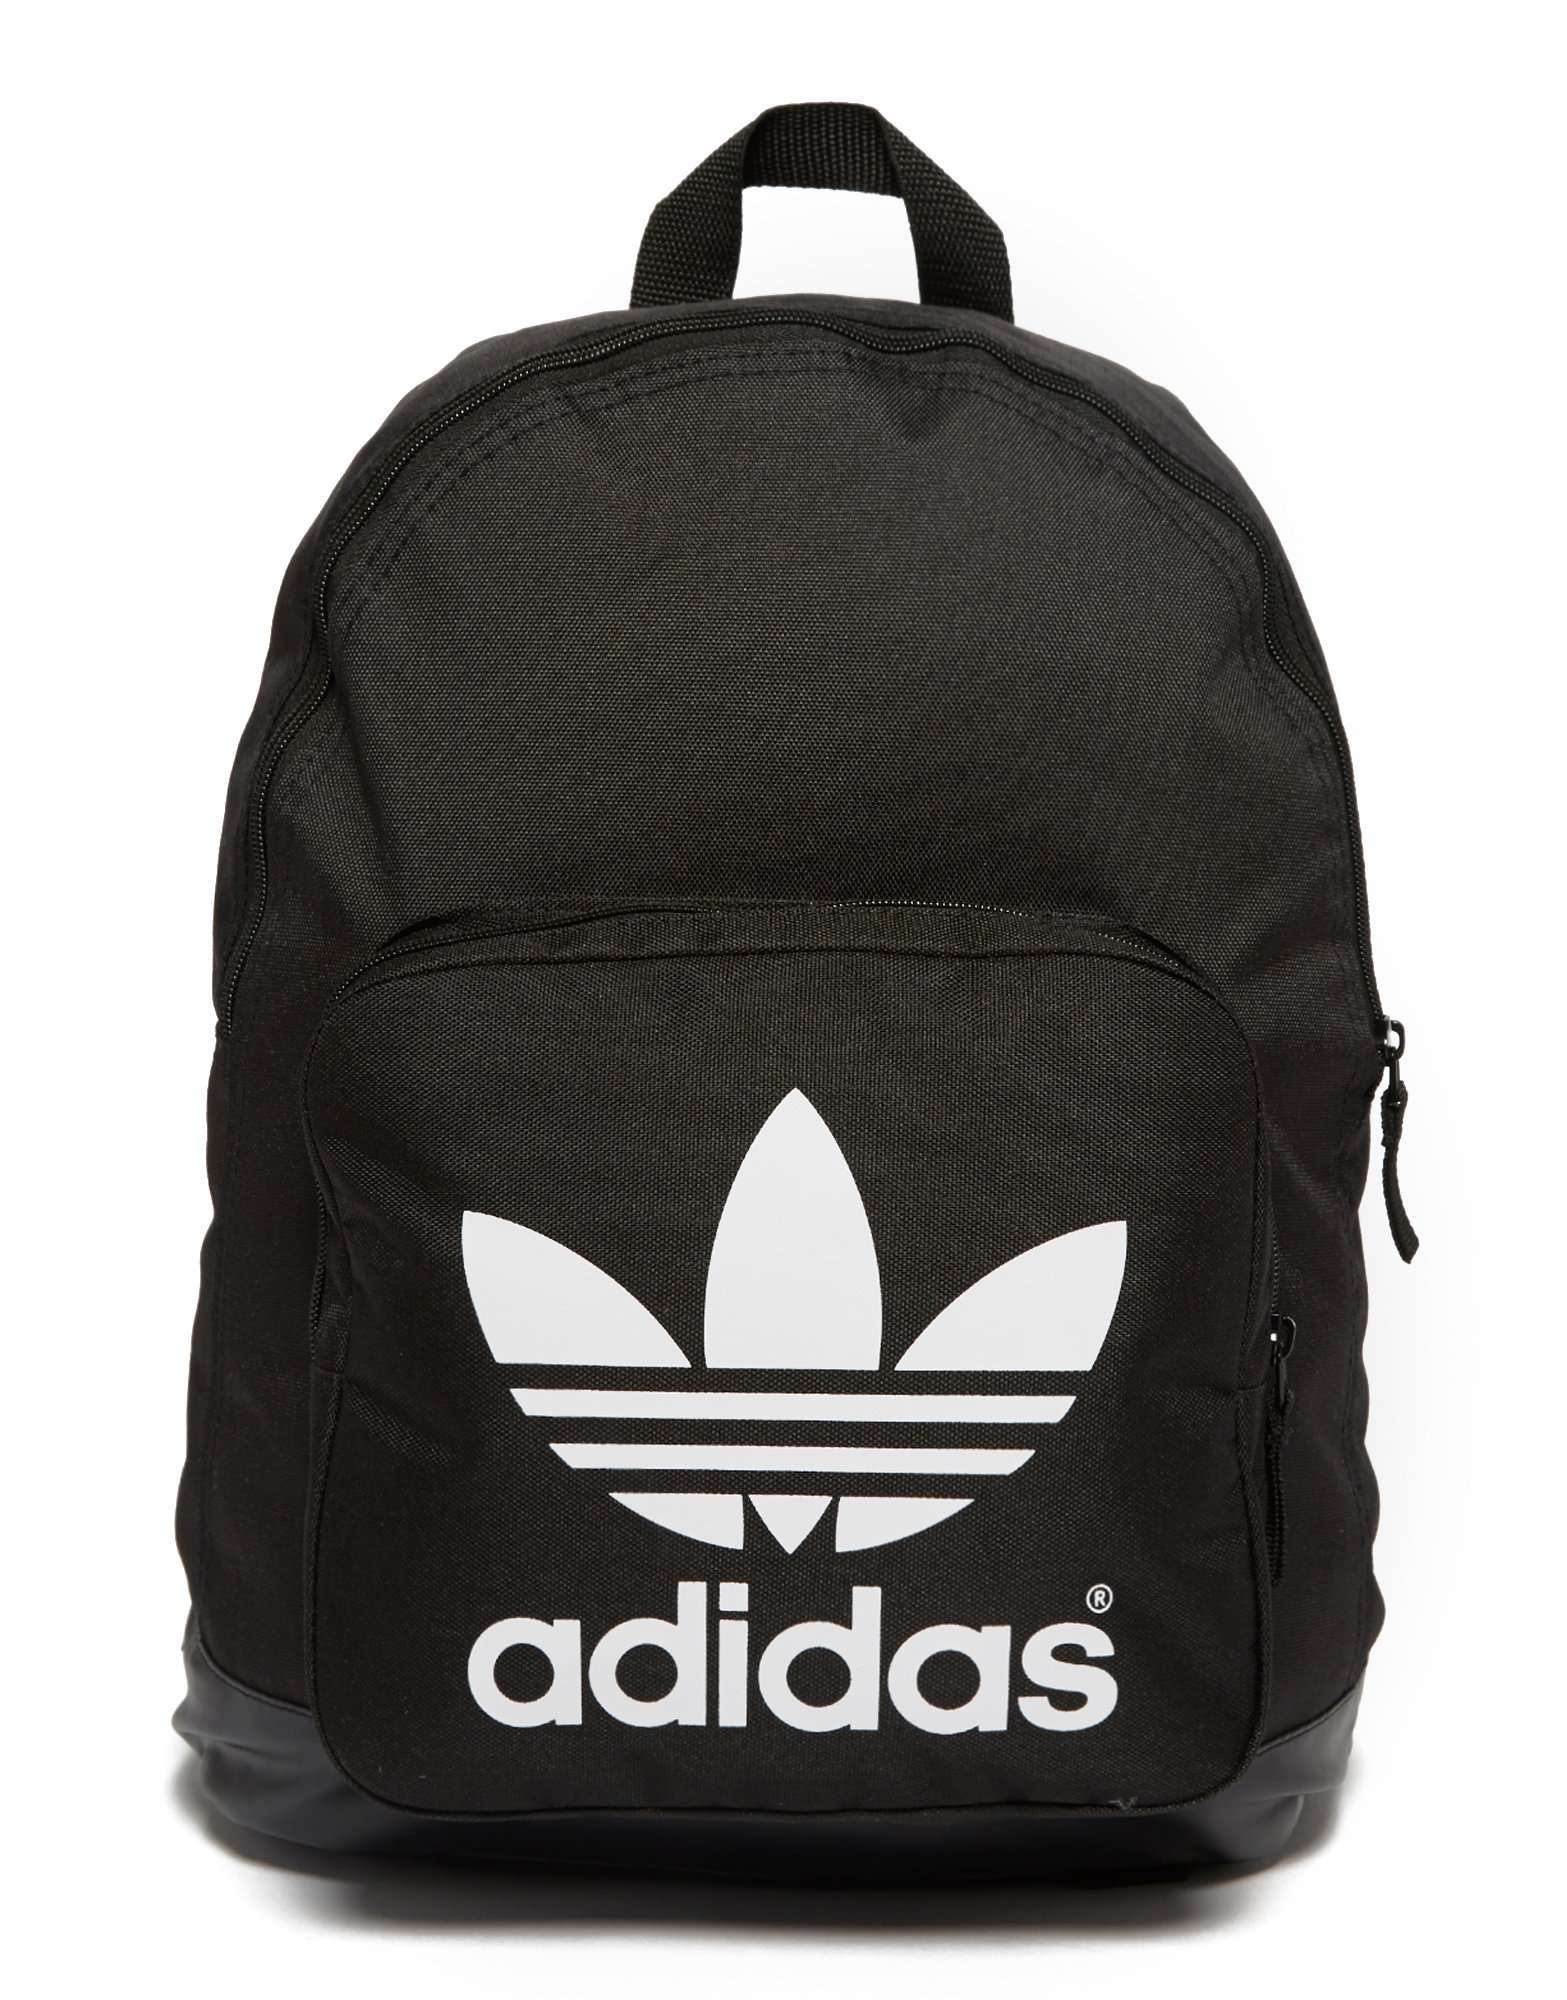 adidas backpack sale